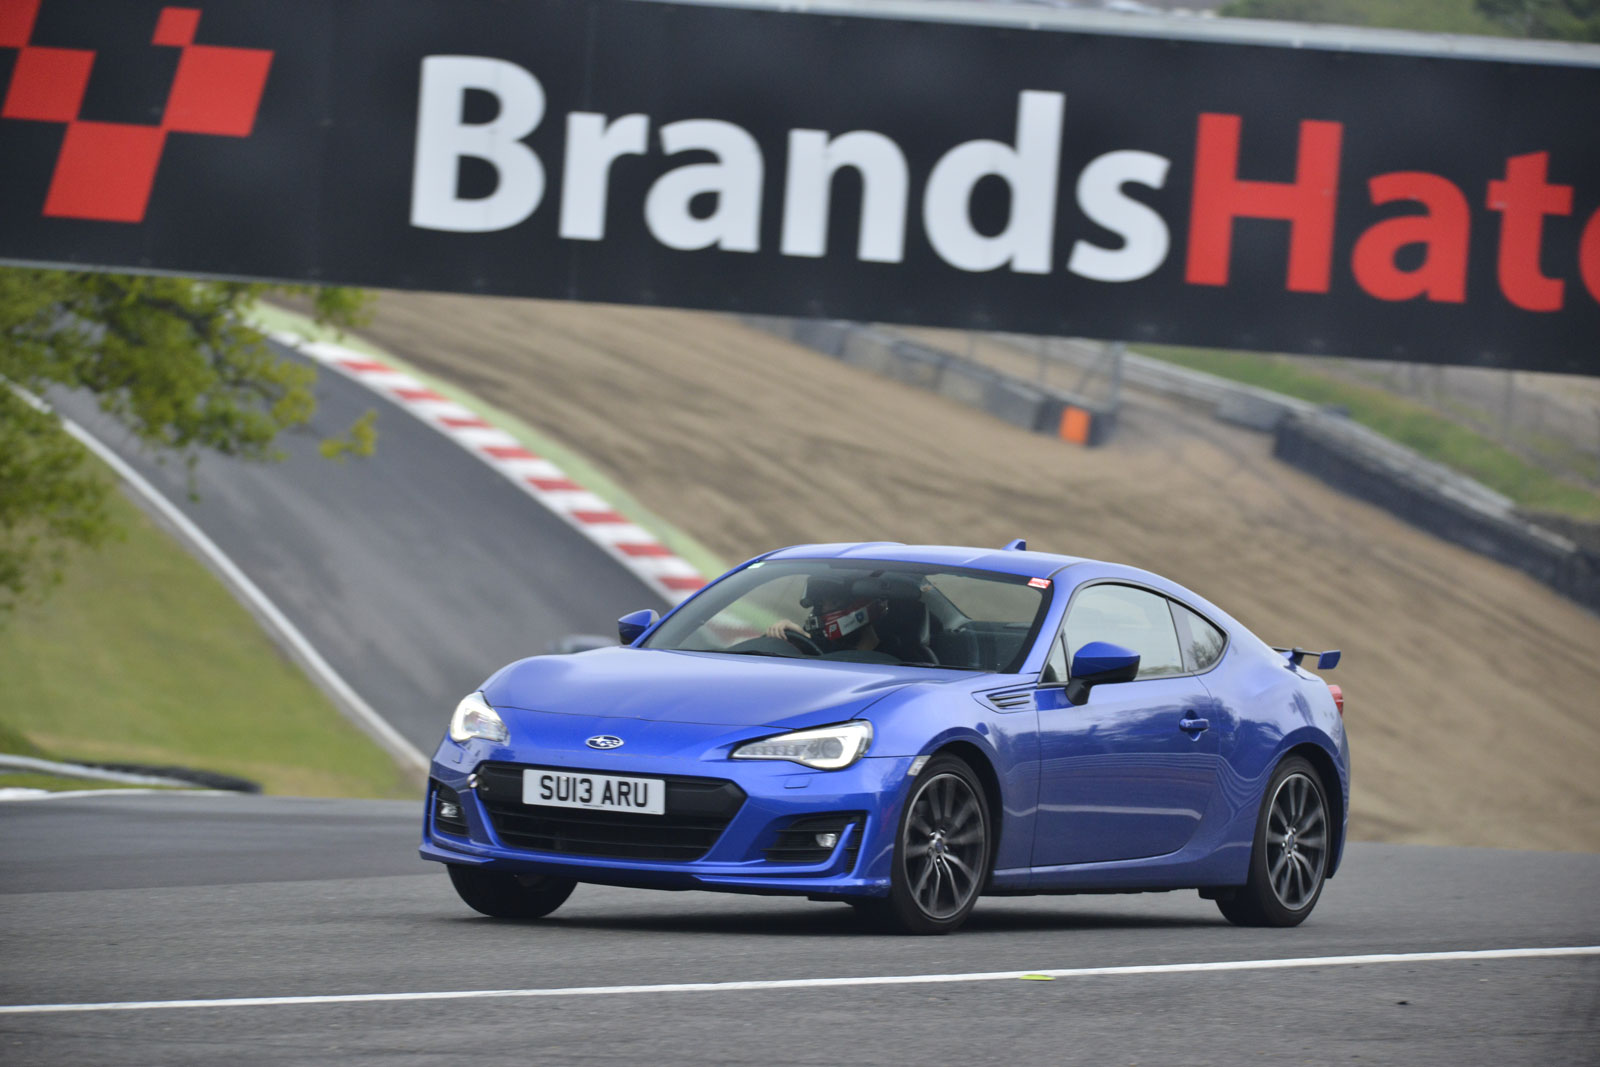 Subaru Brz Long Term Test Review Six Months With A Cut Price Sports Exhaust System Diagram Below Which Shows The Route Your Is Supremely Competent Machine Even In Greasy Conditions Where Its Quick Steering 248 Turns Lock To And Alert Chassis Fill You